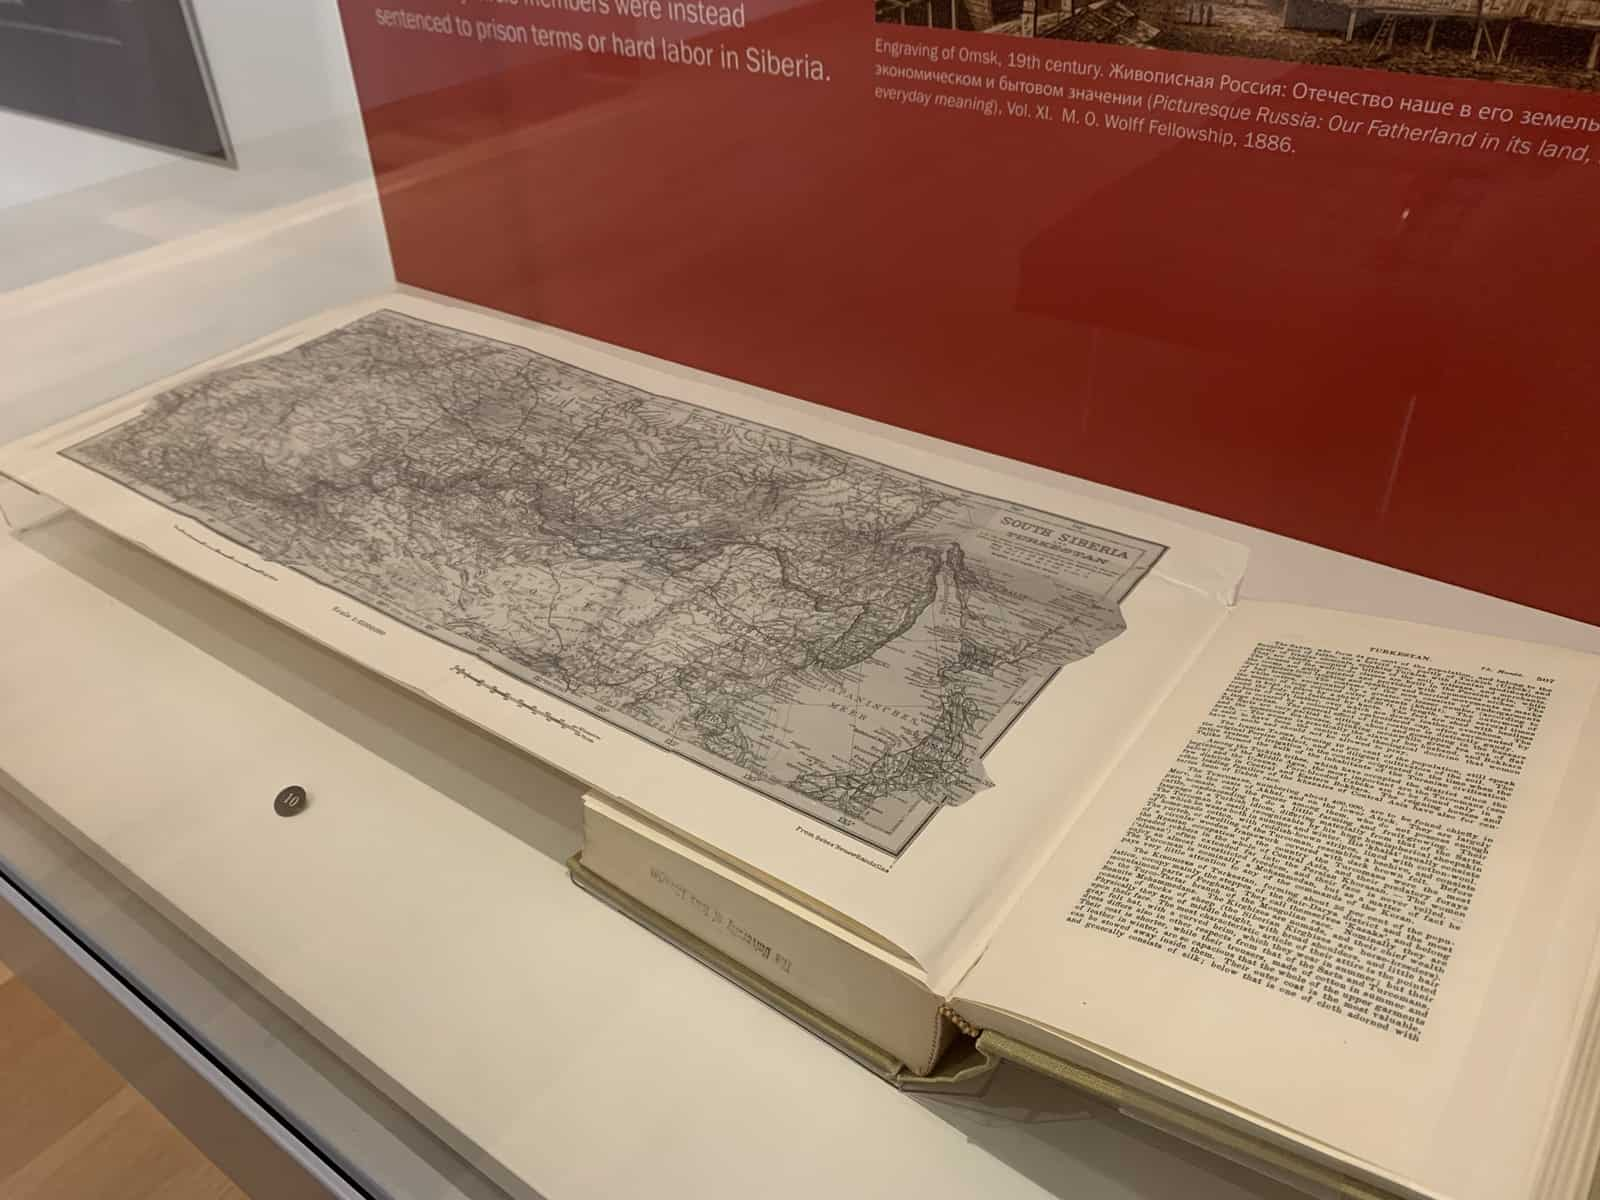 A long illustrated map of Siberia is unfolded from this book and seen in its entirety.